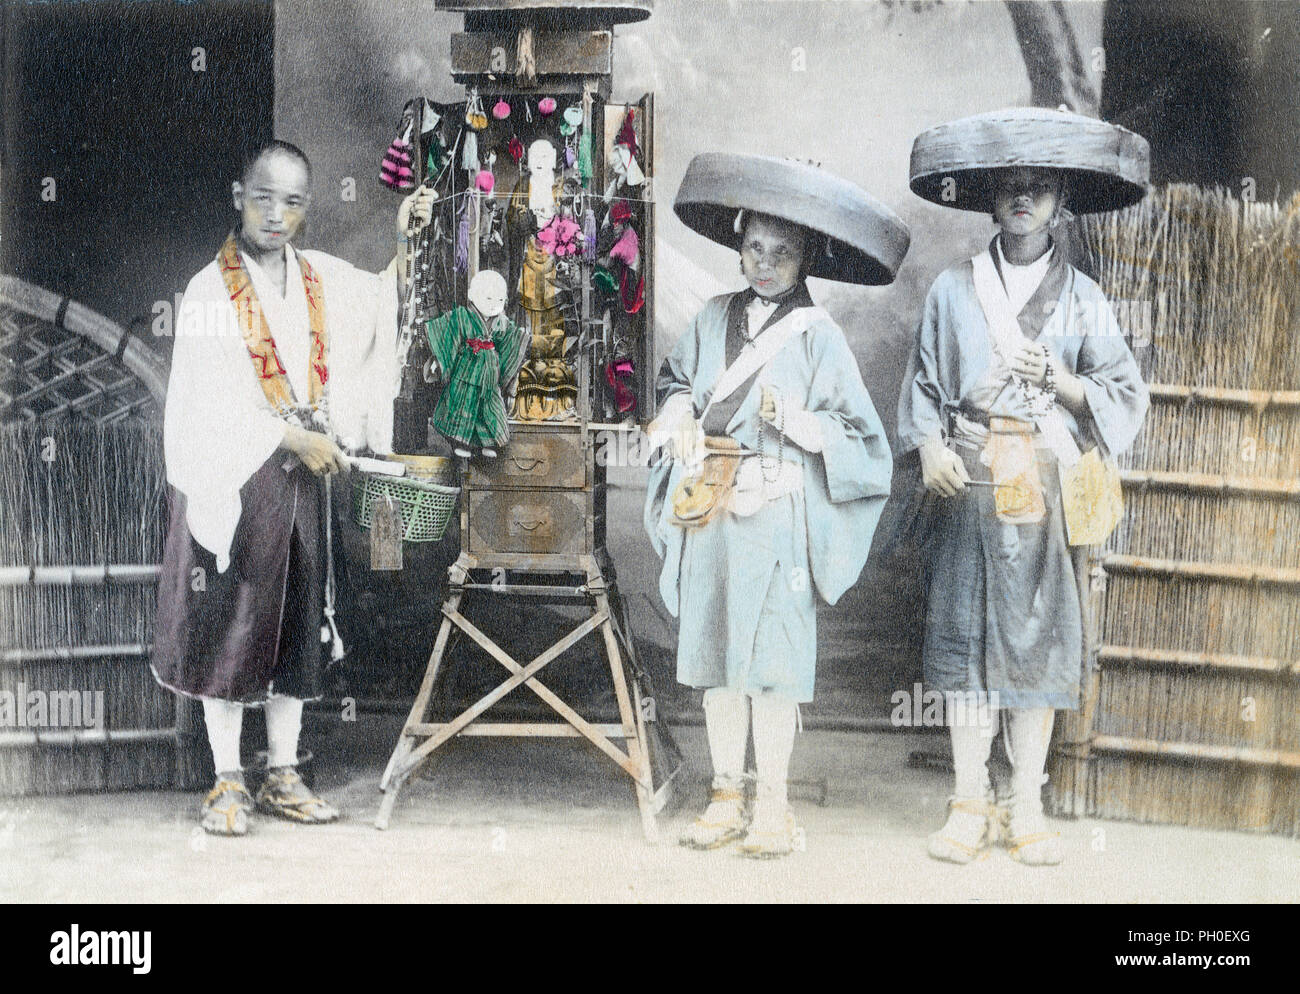 [ 1890s Japan - Pilgrims with a Portable Buddhist Shrine ] —   Three pilgrims with a portable Buddhist shrine. The two people on the right wearing kaki (bamboo hats) are pilgrim beggars known as Hachitataki. They would move from house to house, stand at the front entrance and chant while ringing the bells hanging from their belt.  The original image is small, so this photo doesn't lend itself well for very large usages.  19th century vintage albumen photograph. - Stock Image